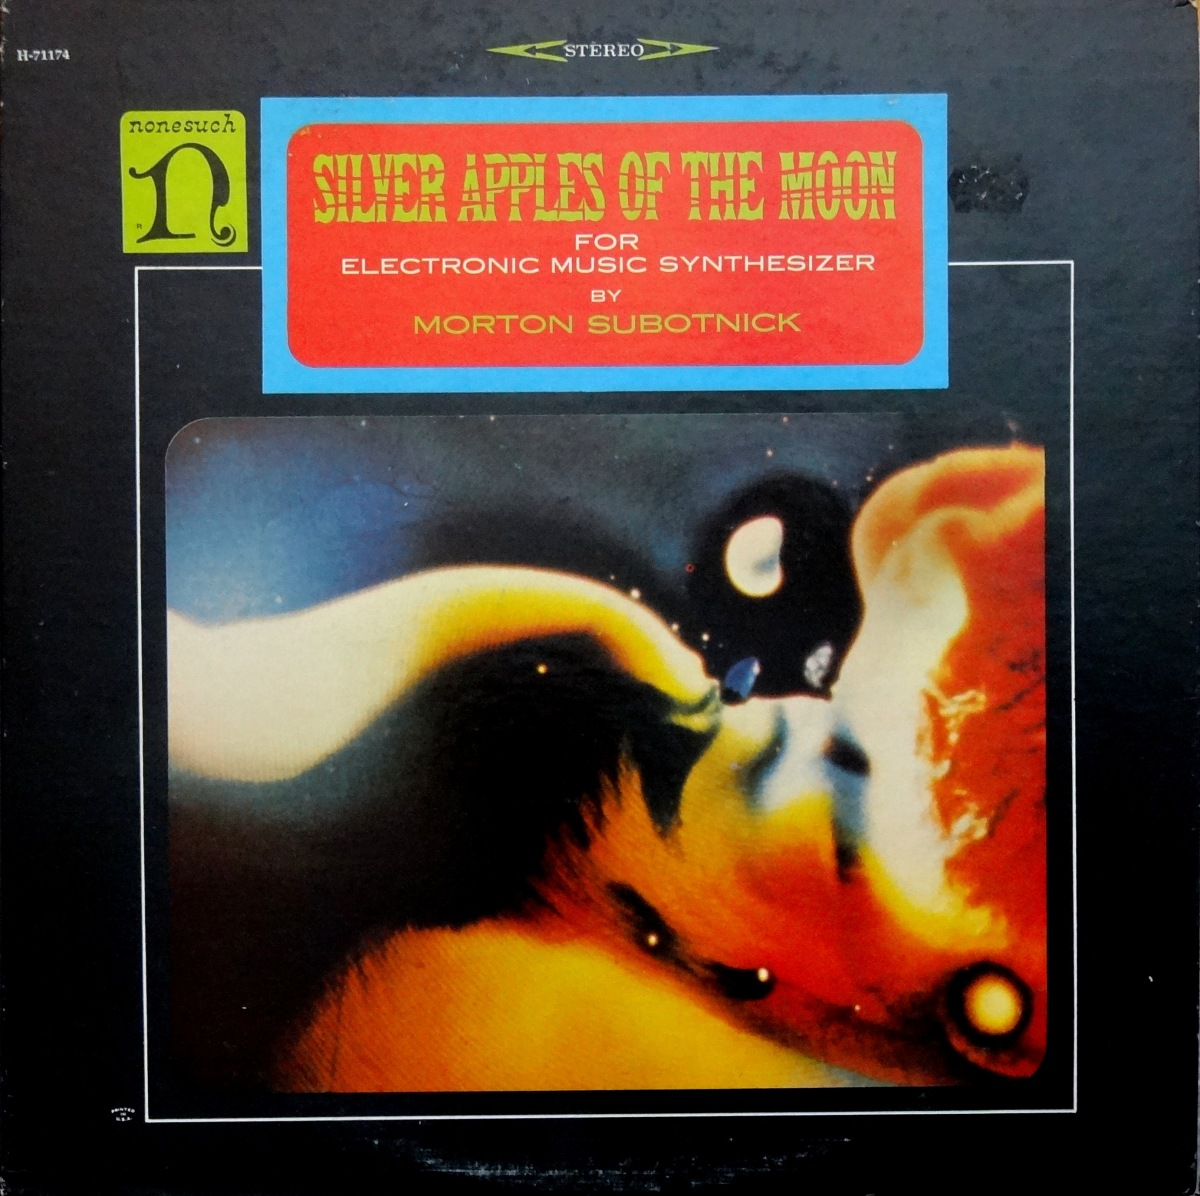 From The Stacks: Morton Subotnick, 'Silver Apples Of the Moon'